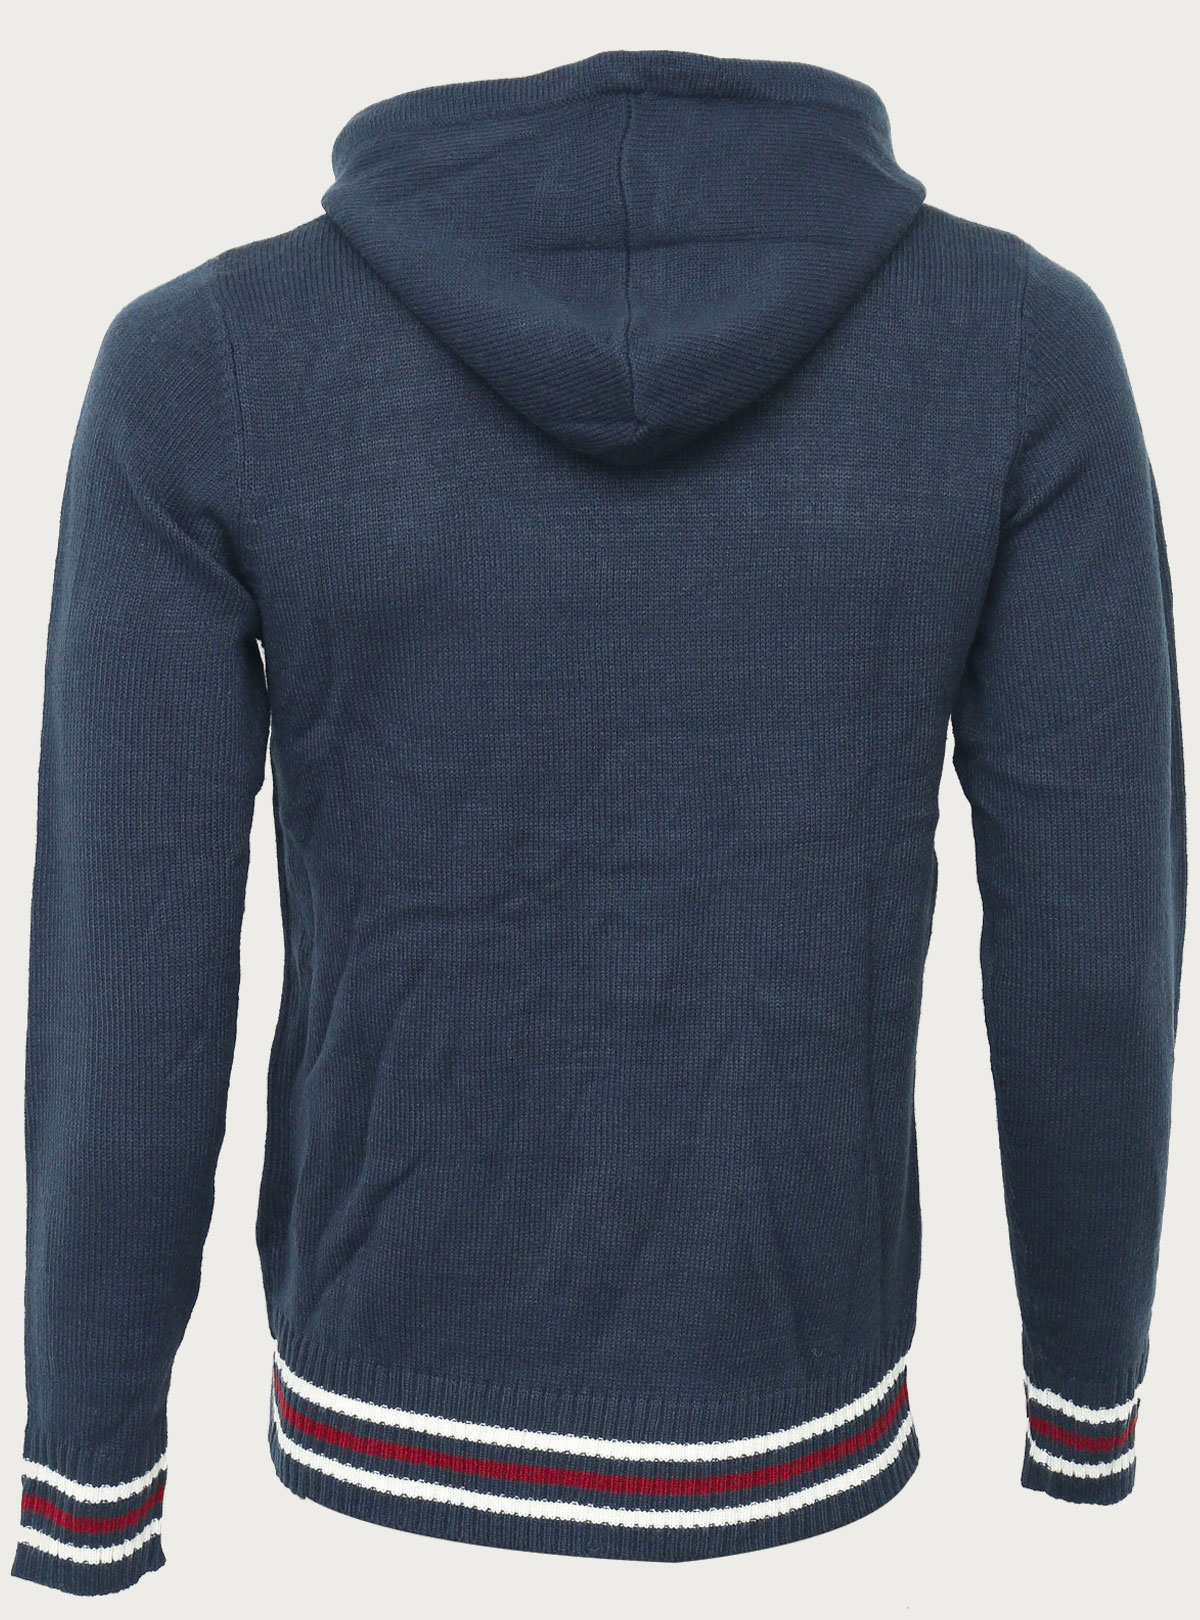 STYLISH HOODIE SWEATER BY TERRANOVA. | Esho.com | Best online ...